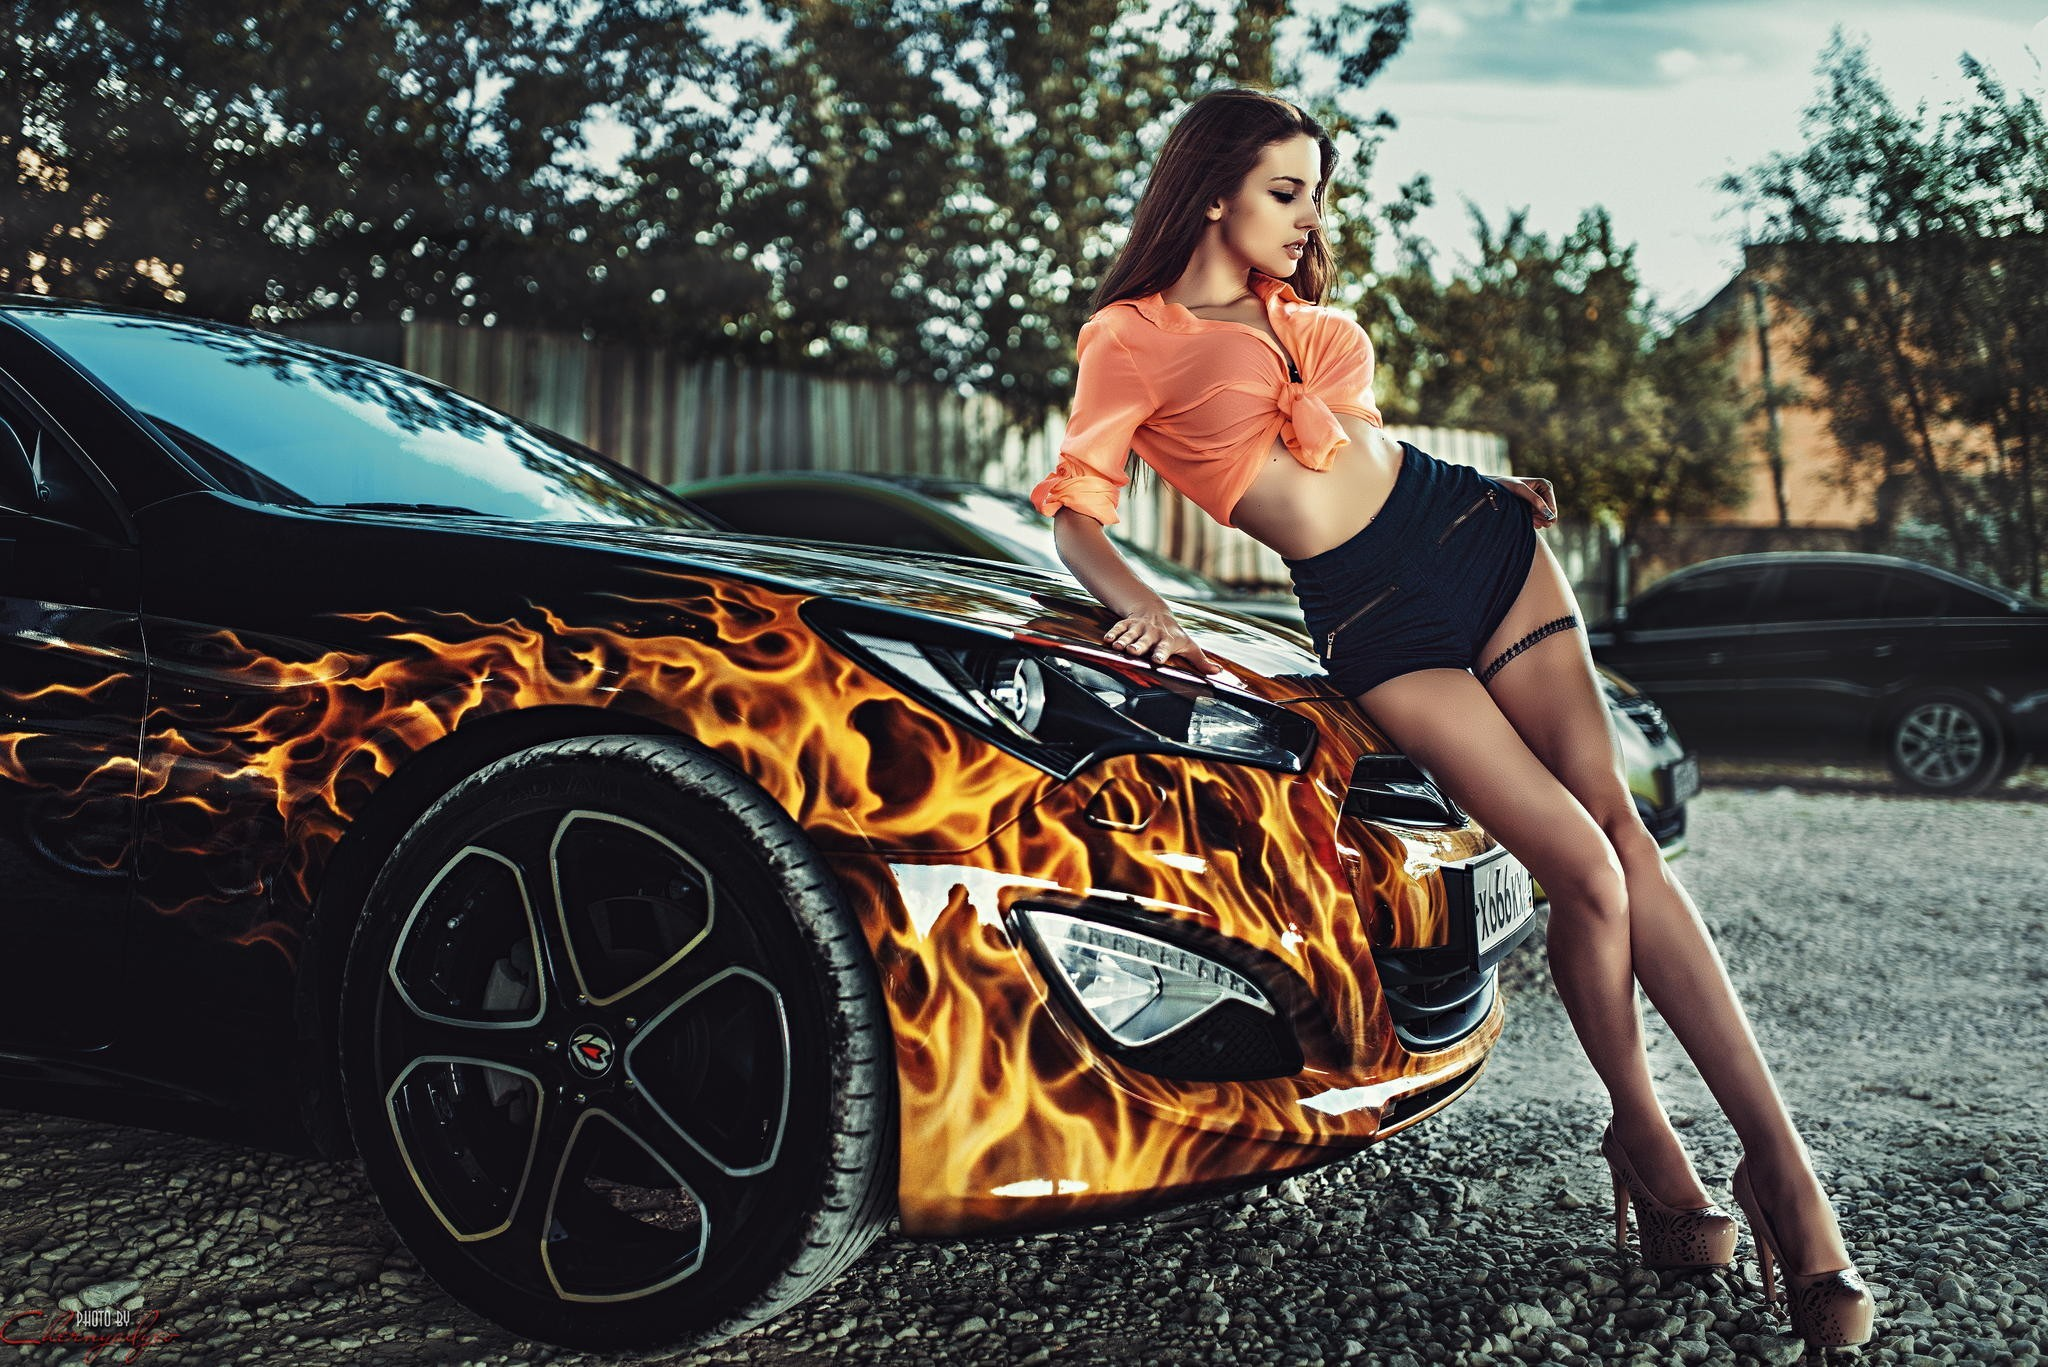 alla berger posing with car, hd girls, 4k wallpapers, images